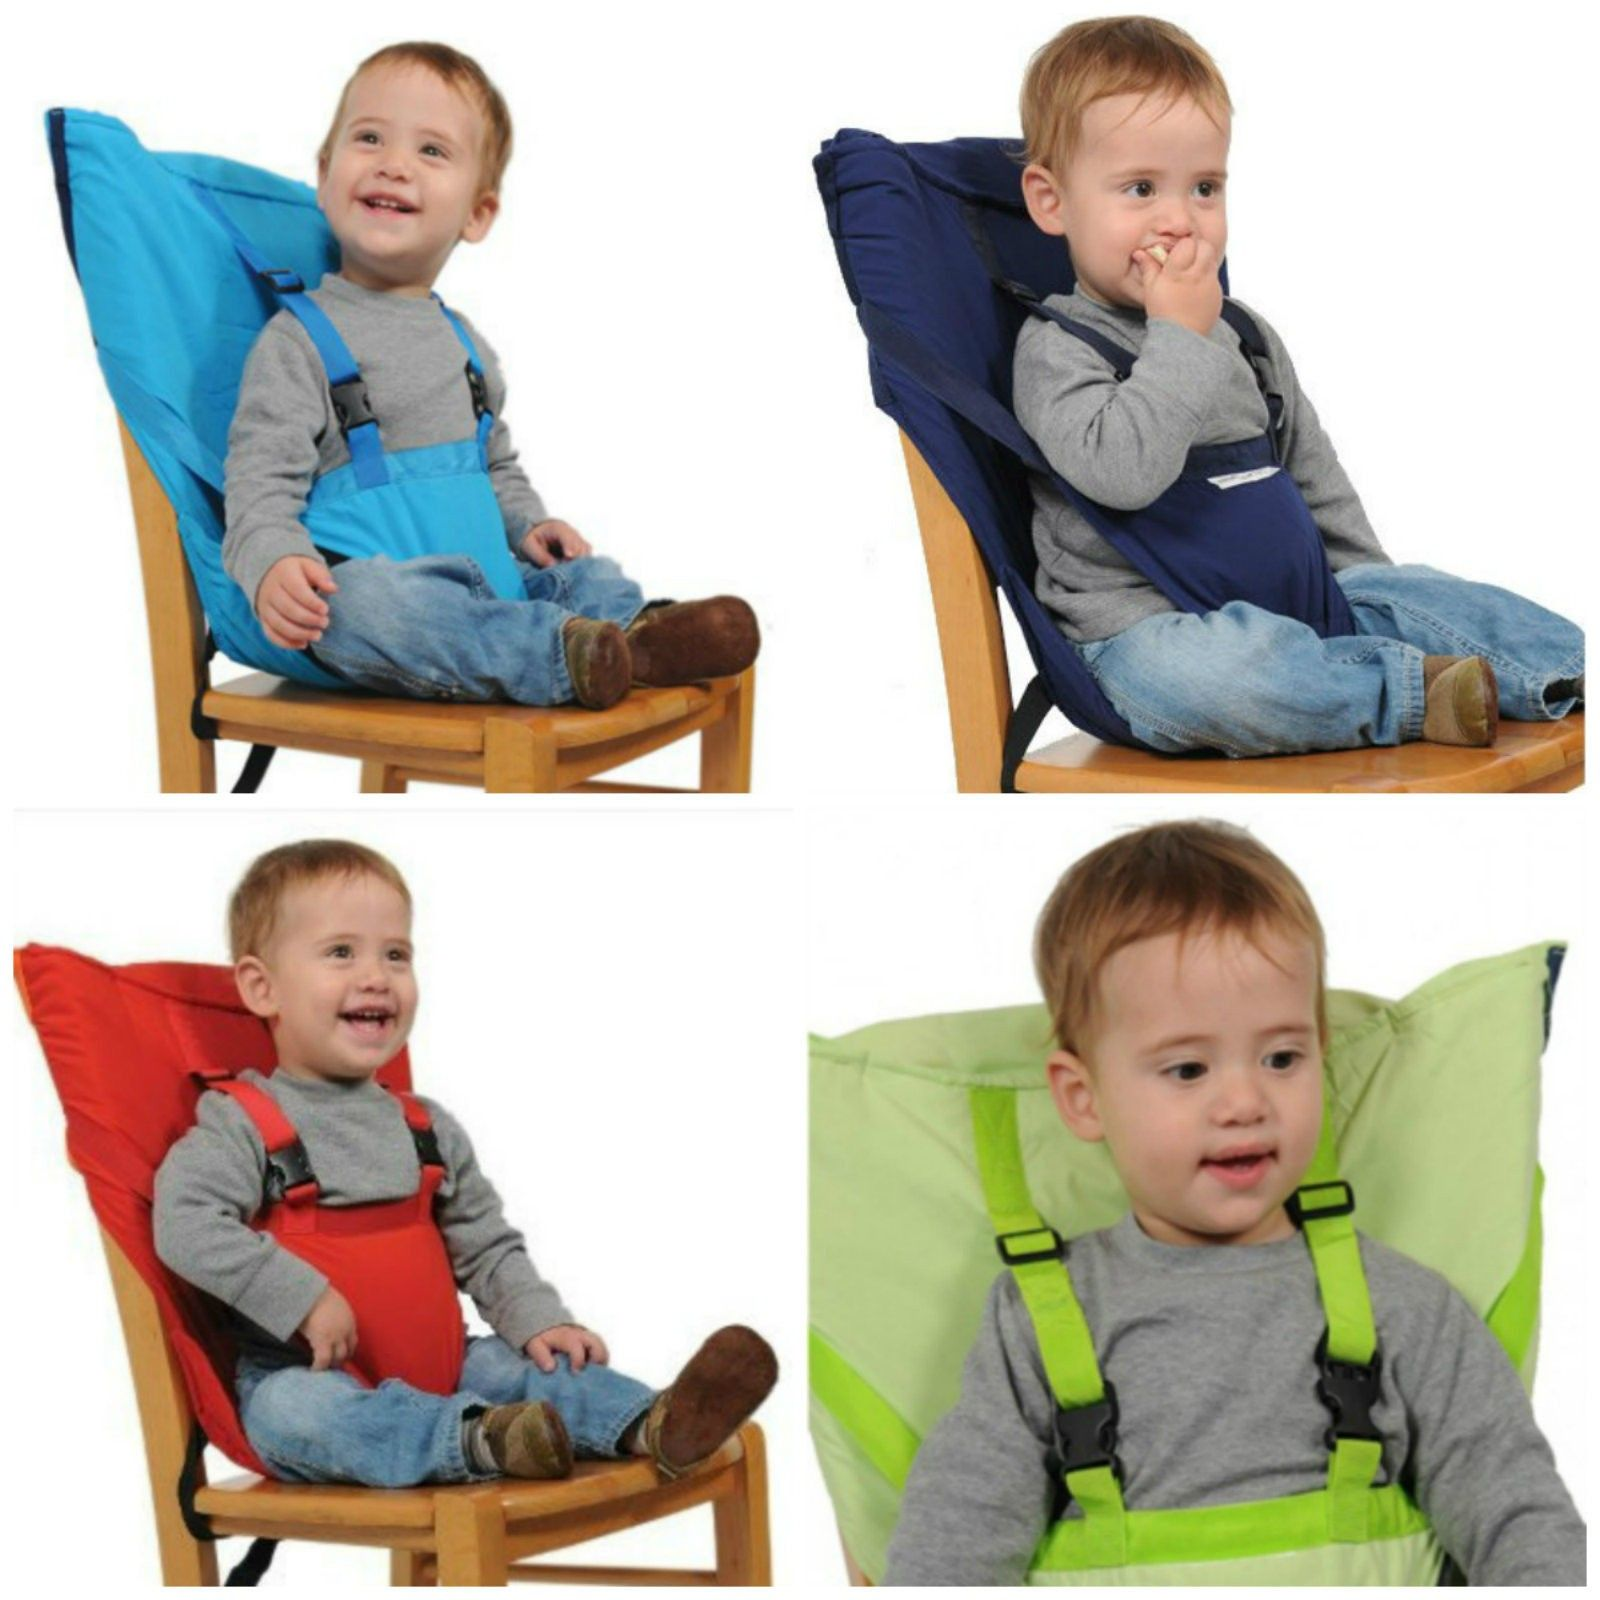 Sack N Seat Baby Portable High Chair Shoulder Strap Portable